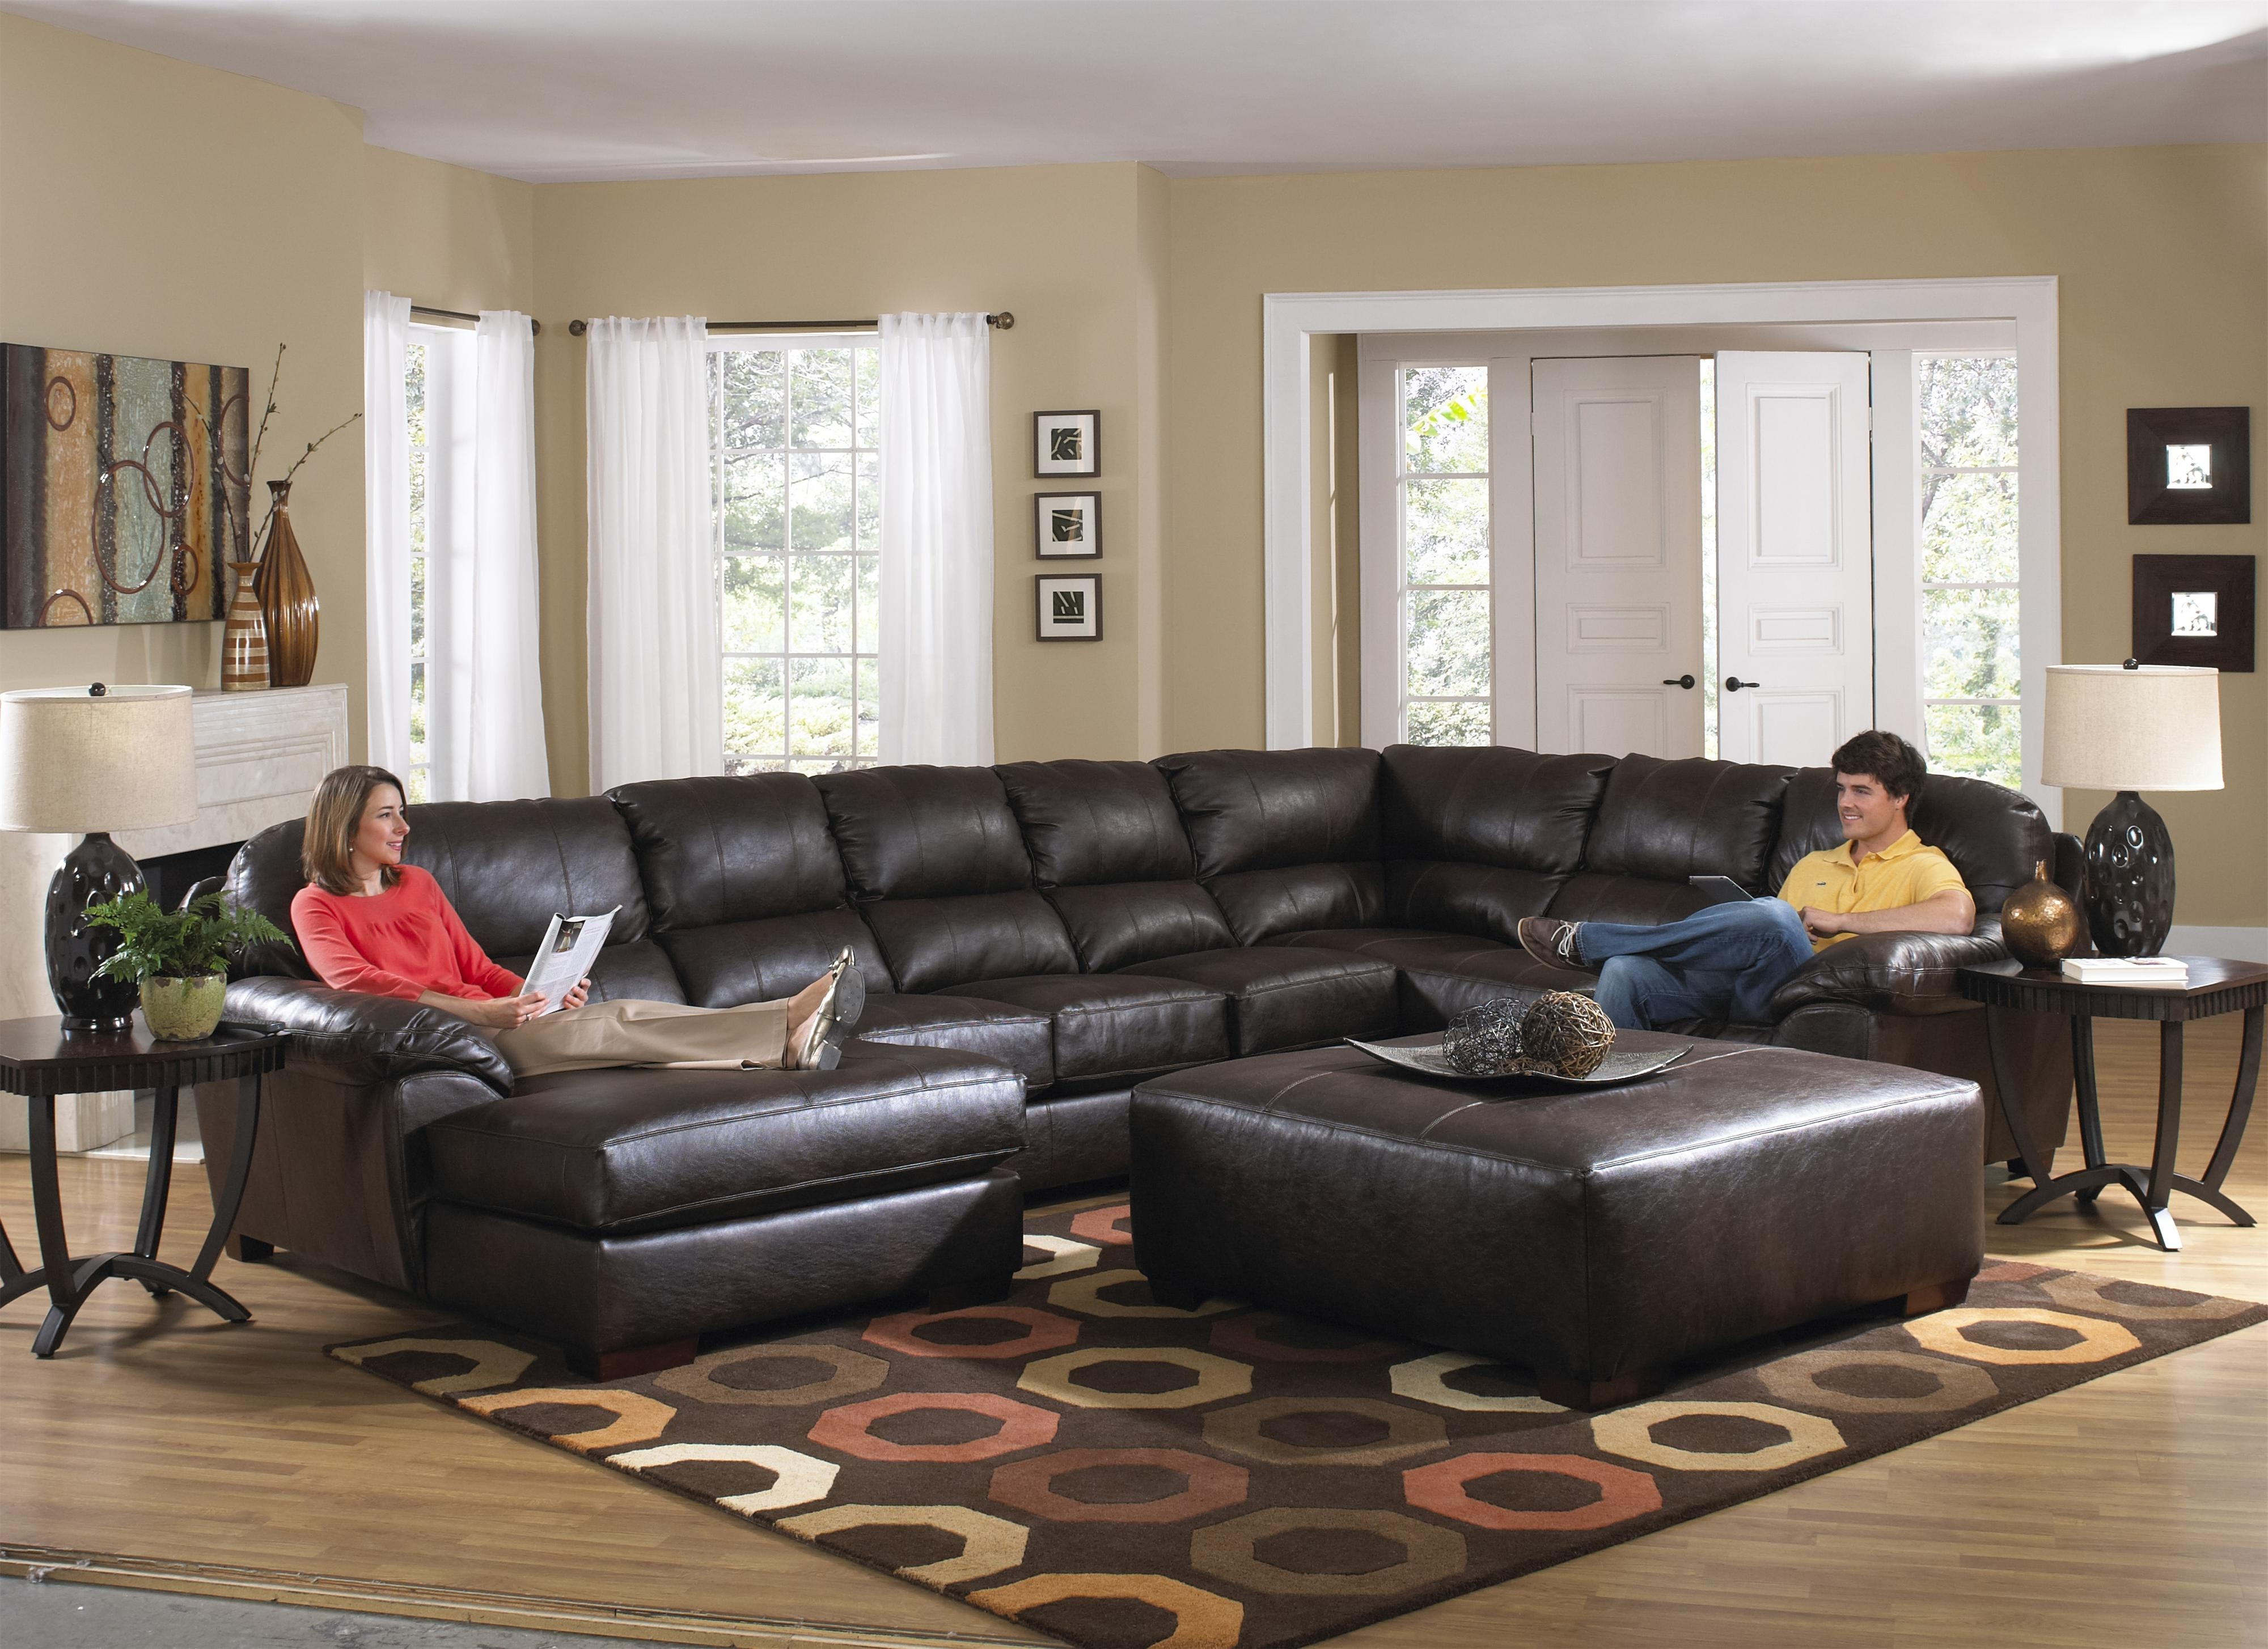 Sectionals With Oversized Ottoman Pertaining To Most Recent Oversized Couches Ashley Furniture Extra Deep Couch Oversized (View 17 of 20)